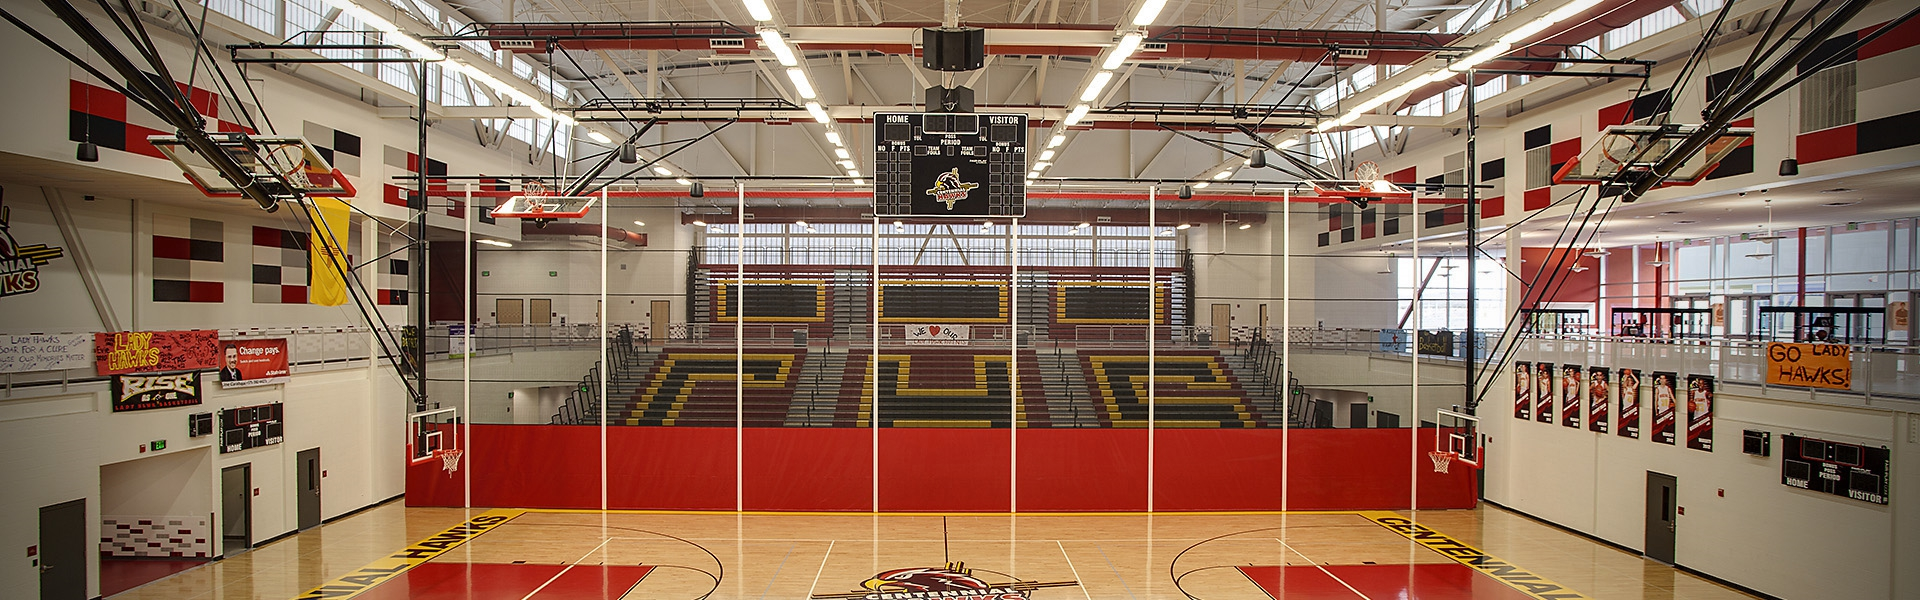 BASKETBALL BACKSTOPS, GYM DIVIDERS AND WALL PADS | Centennial High School, Las Cruces, NM | Architect: Norcon of New Mexico